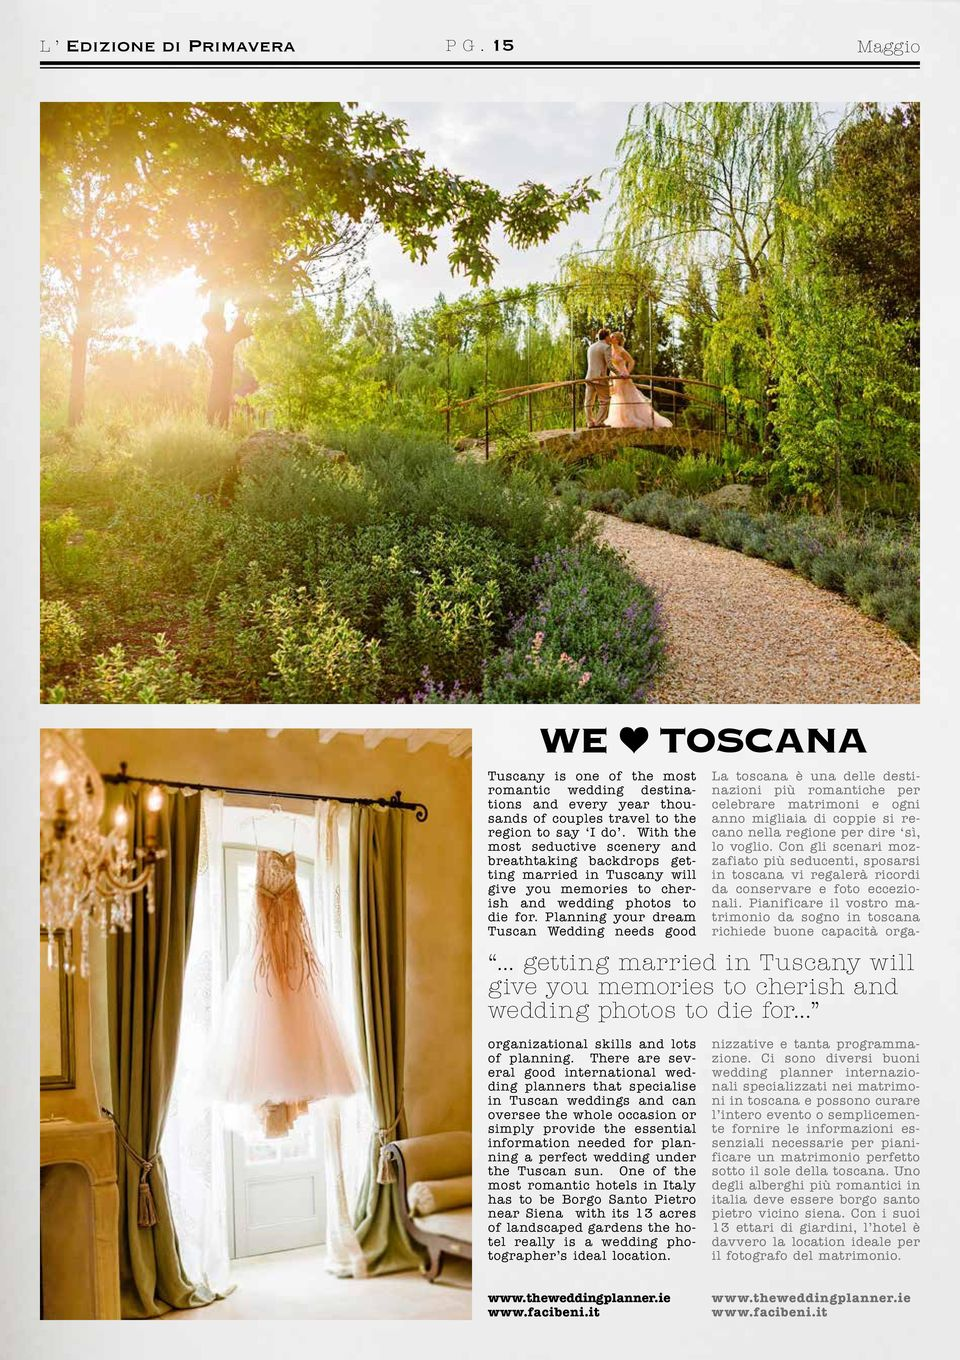 Planning your dream Tuscan Wedding needs good TOSCANA... getting married in Tuscany will give you memories to cherish and wedding photos to die for... organizational skills and lots of planning.